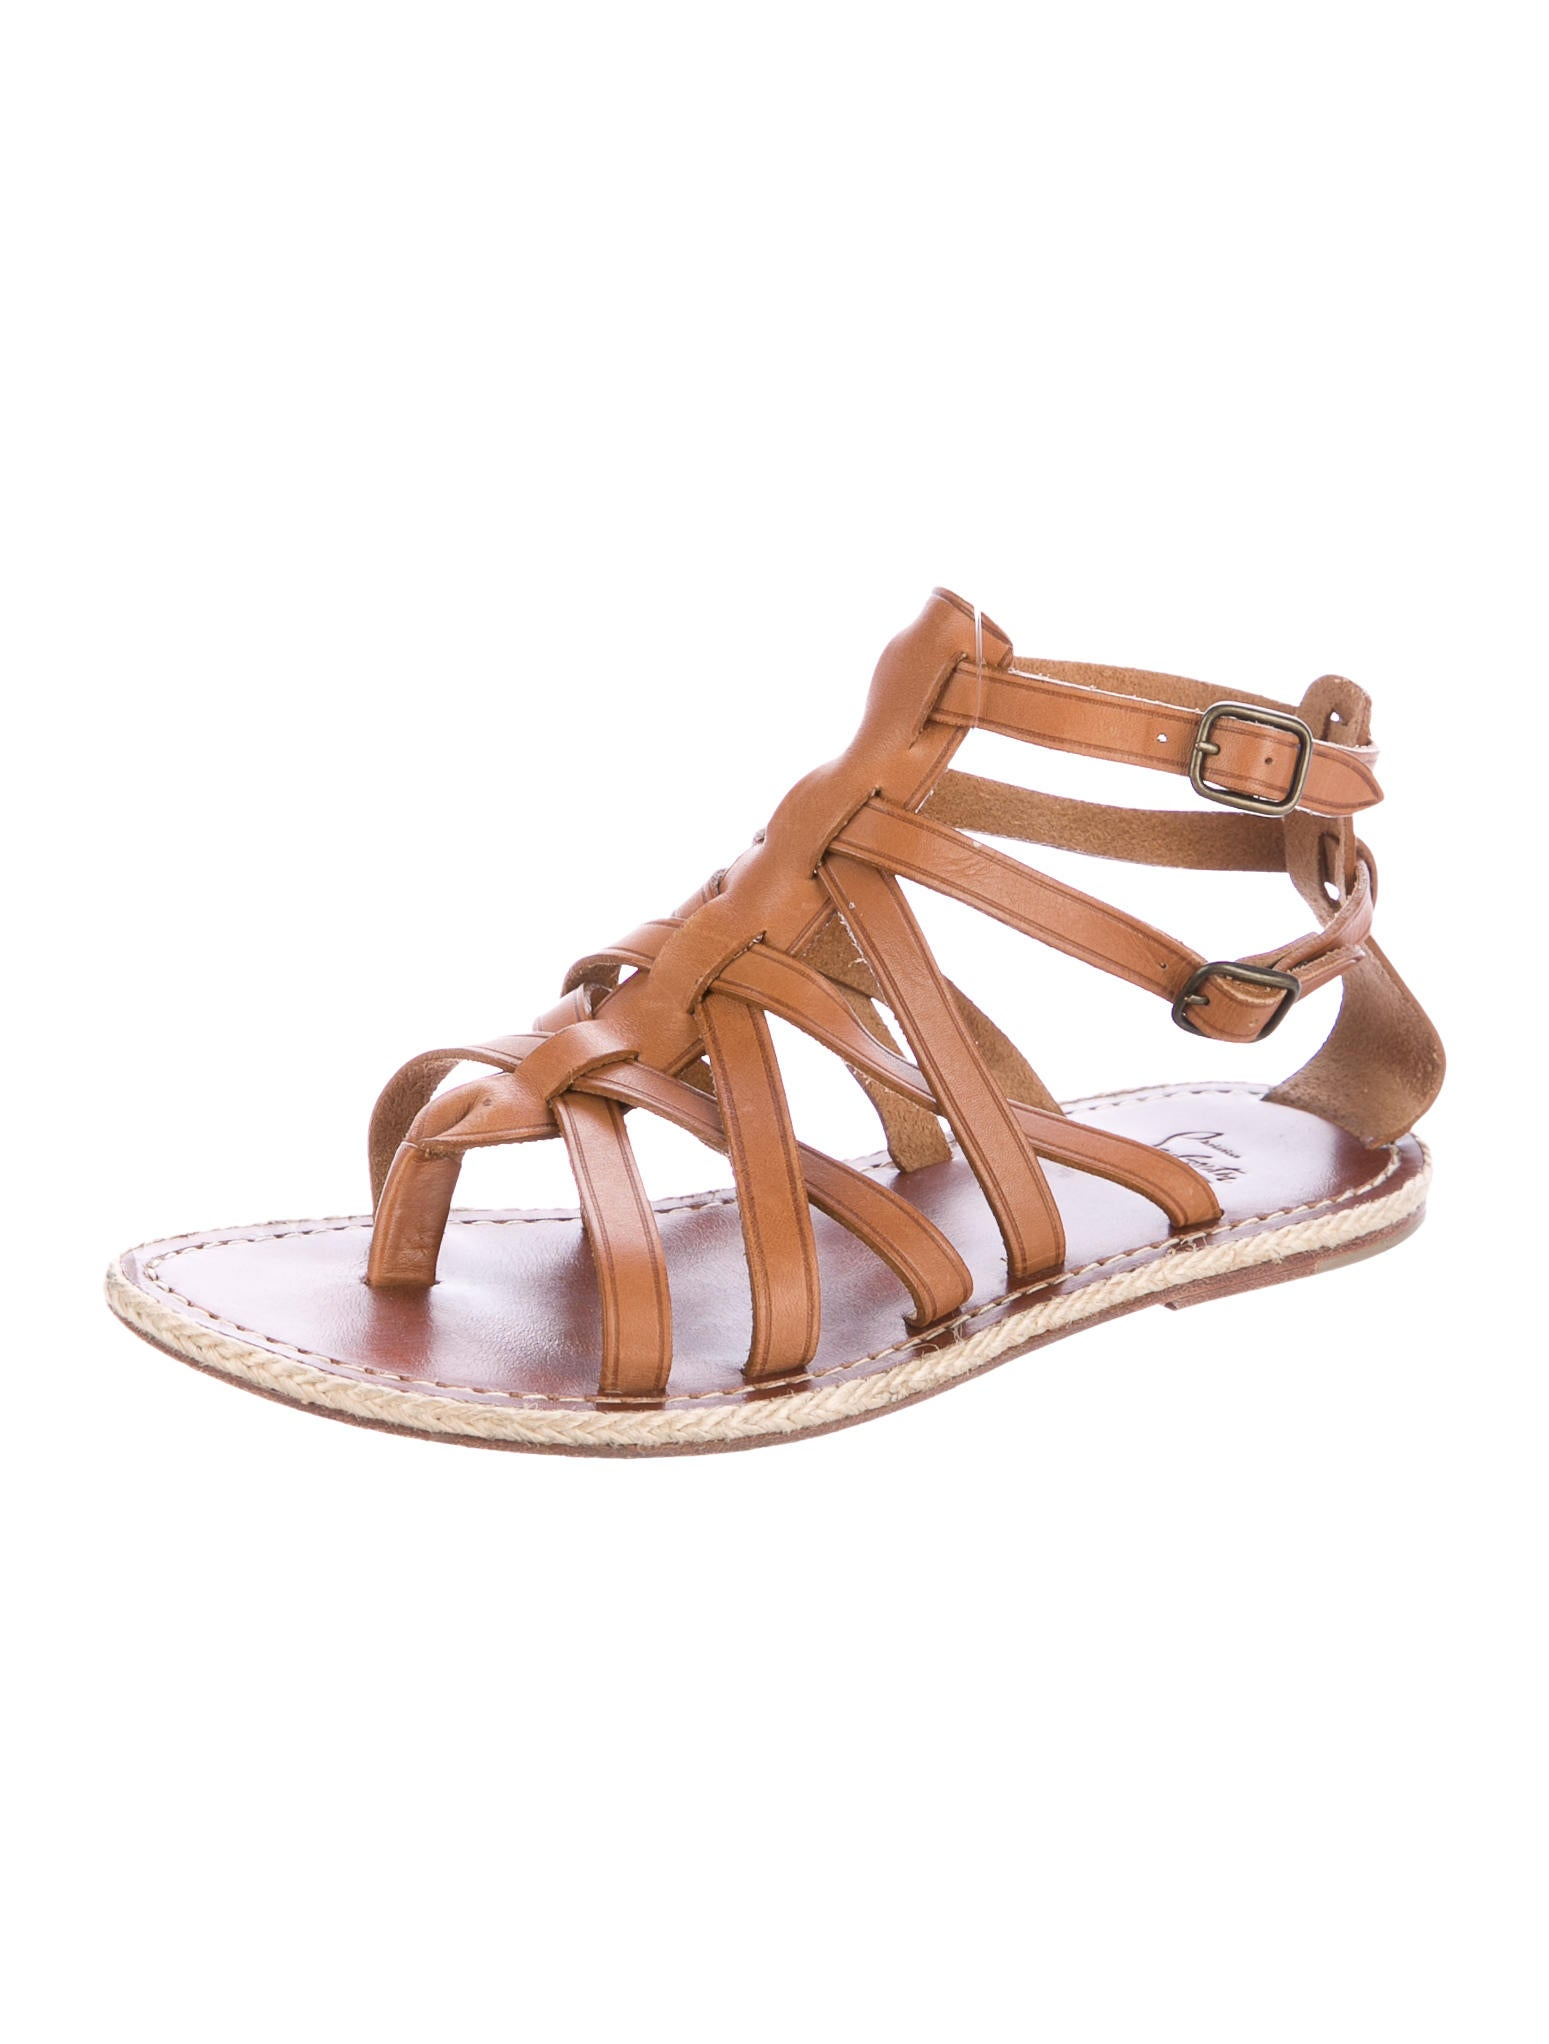 low priced c1723 64d6c Louboutin Shoes Thailand Christian Louboutin Sale Clearance ...